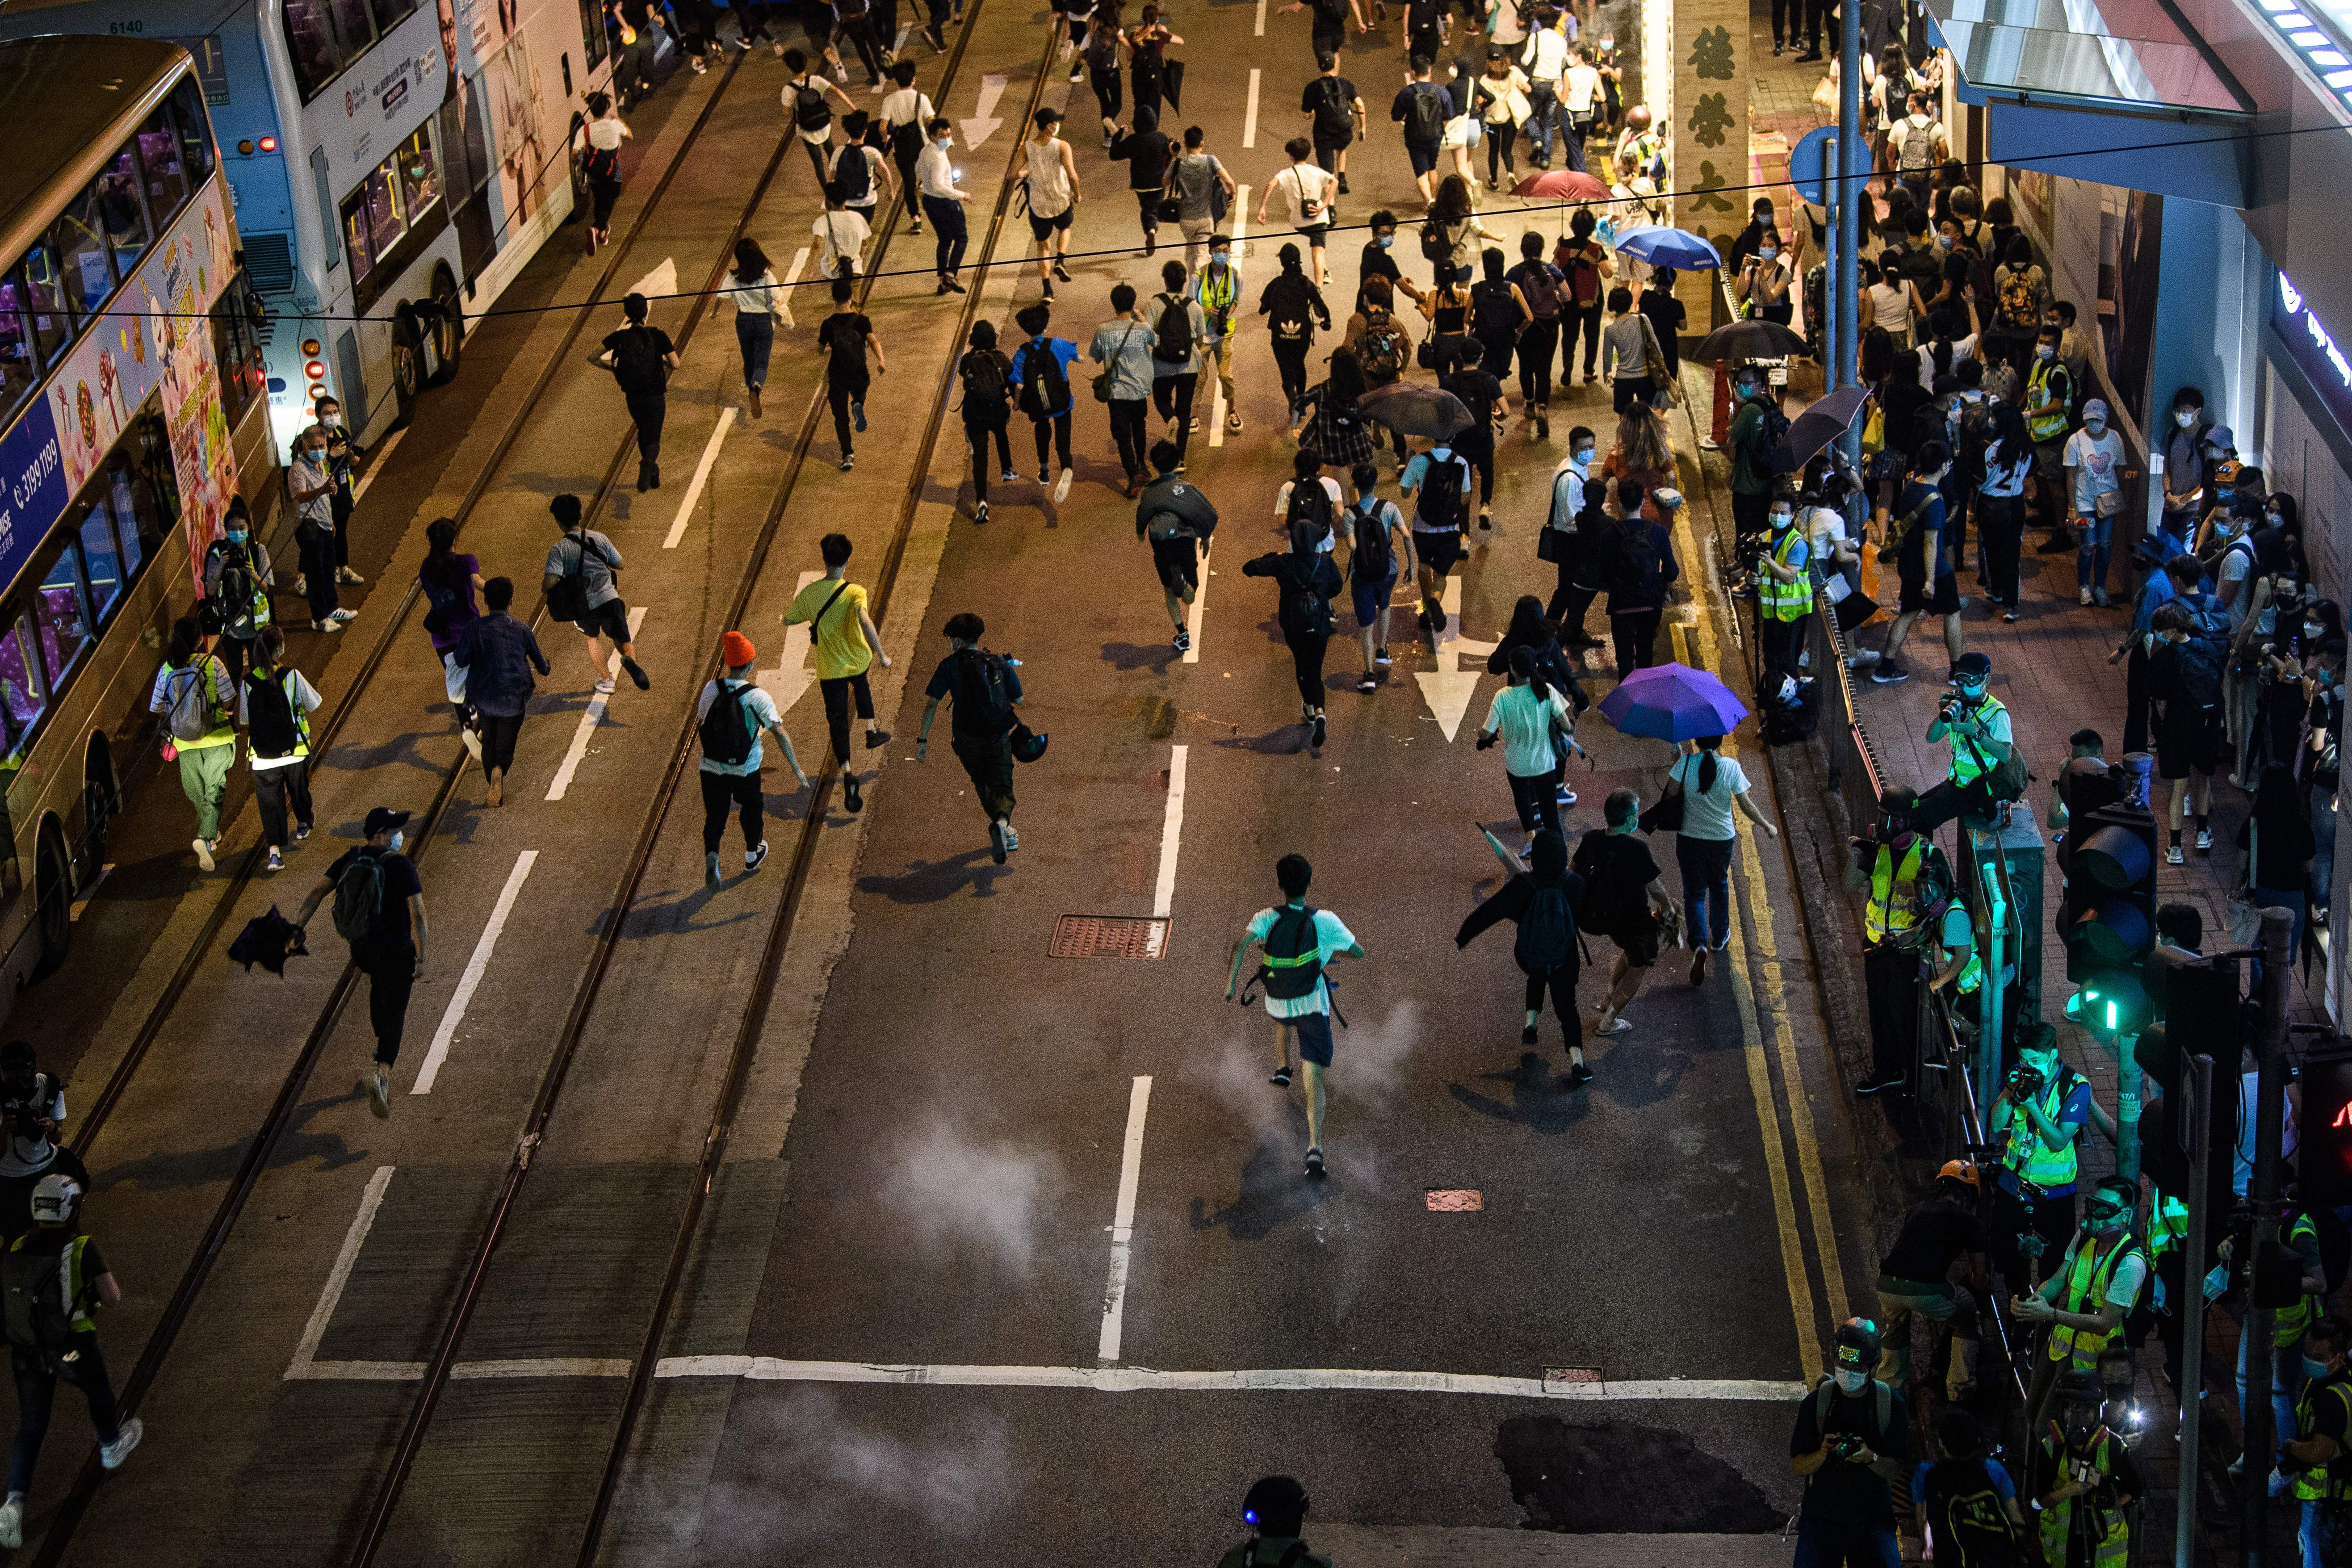 Pro-democracy protesters run as police fire pepper ball rounds to disperse the crowd in the Central district of Hong Kong on June 9, 2020, as the city marks the one-year anniversary since pro-democracy protests erupted